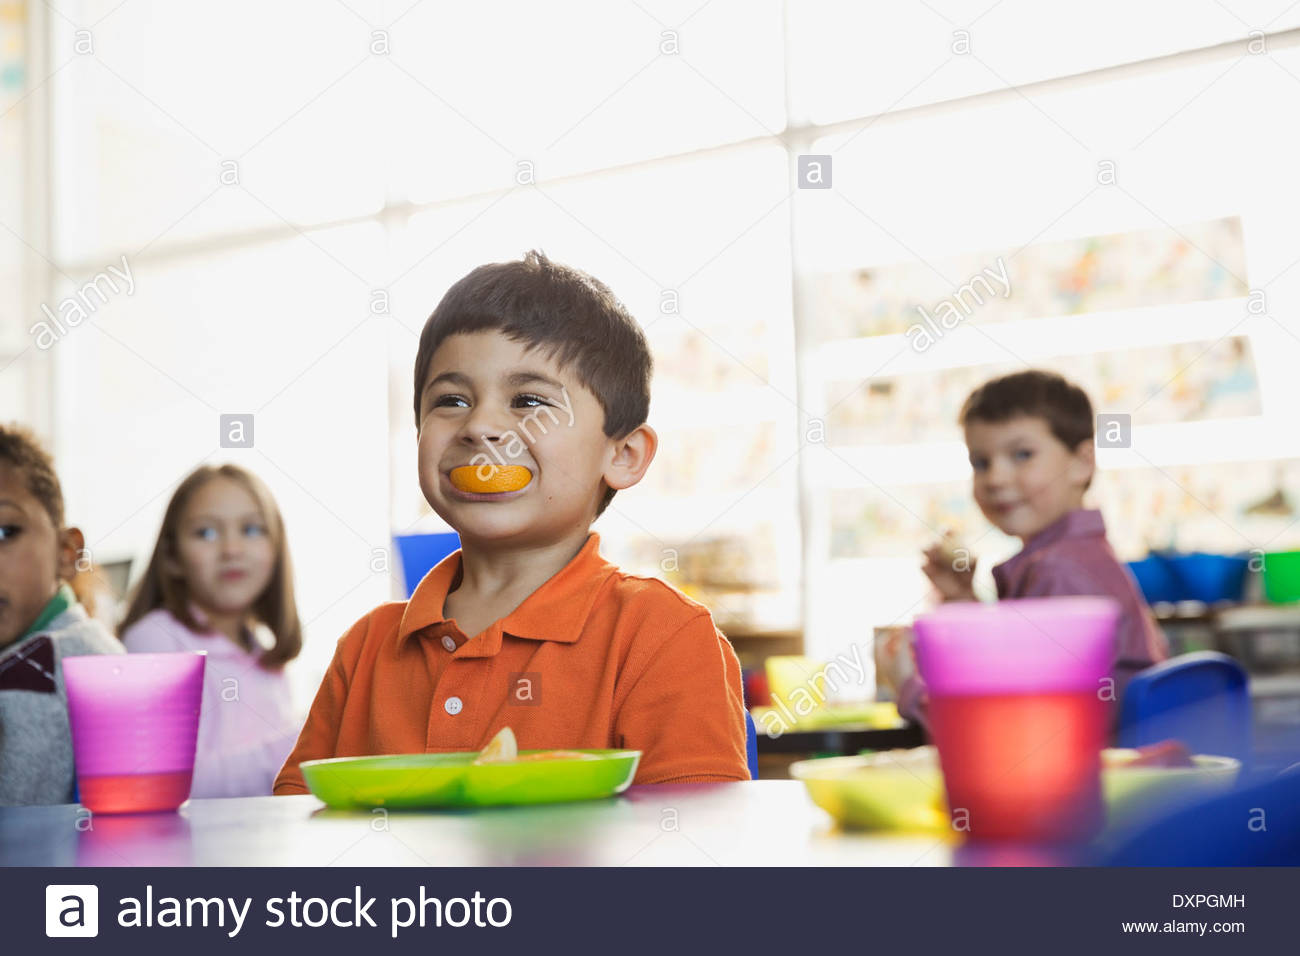 Playful boy holding orange slice in mouth at school at snack time - Stock Image